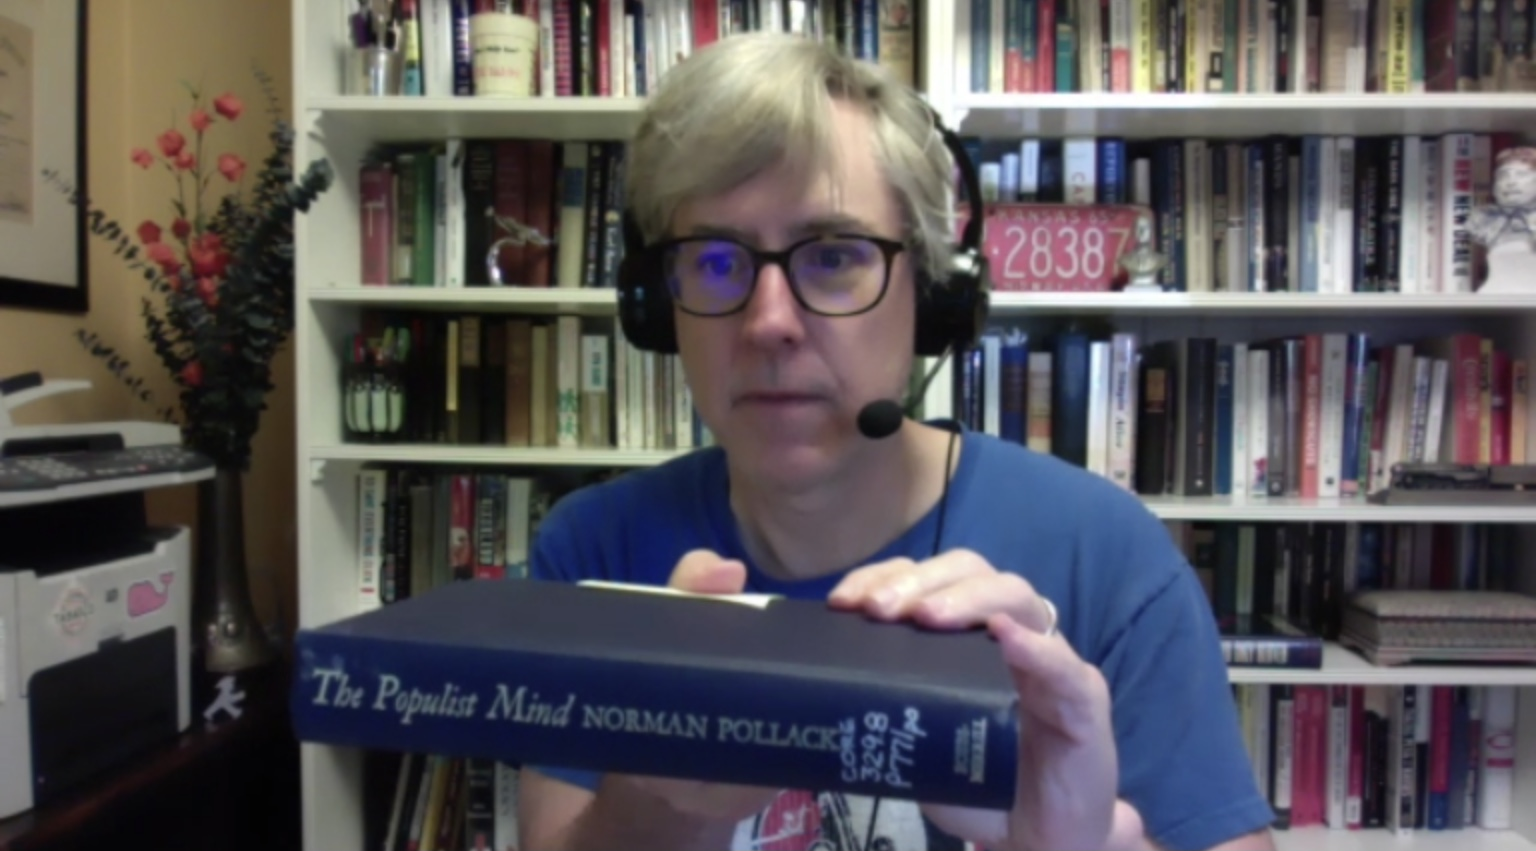 Thomas Frank's Essential Insight – True Populism Is Transracial: An Interview + Review of The People, No! A Brief History of Anti-Populism 2